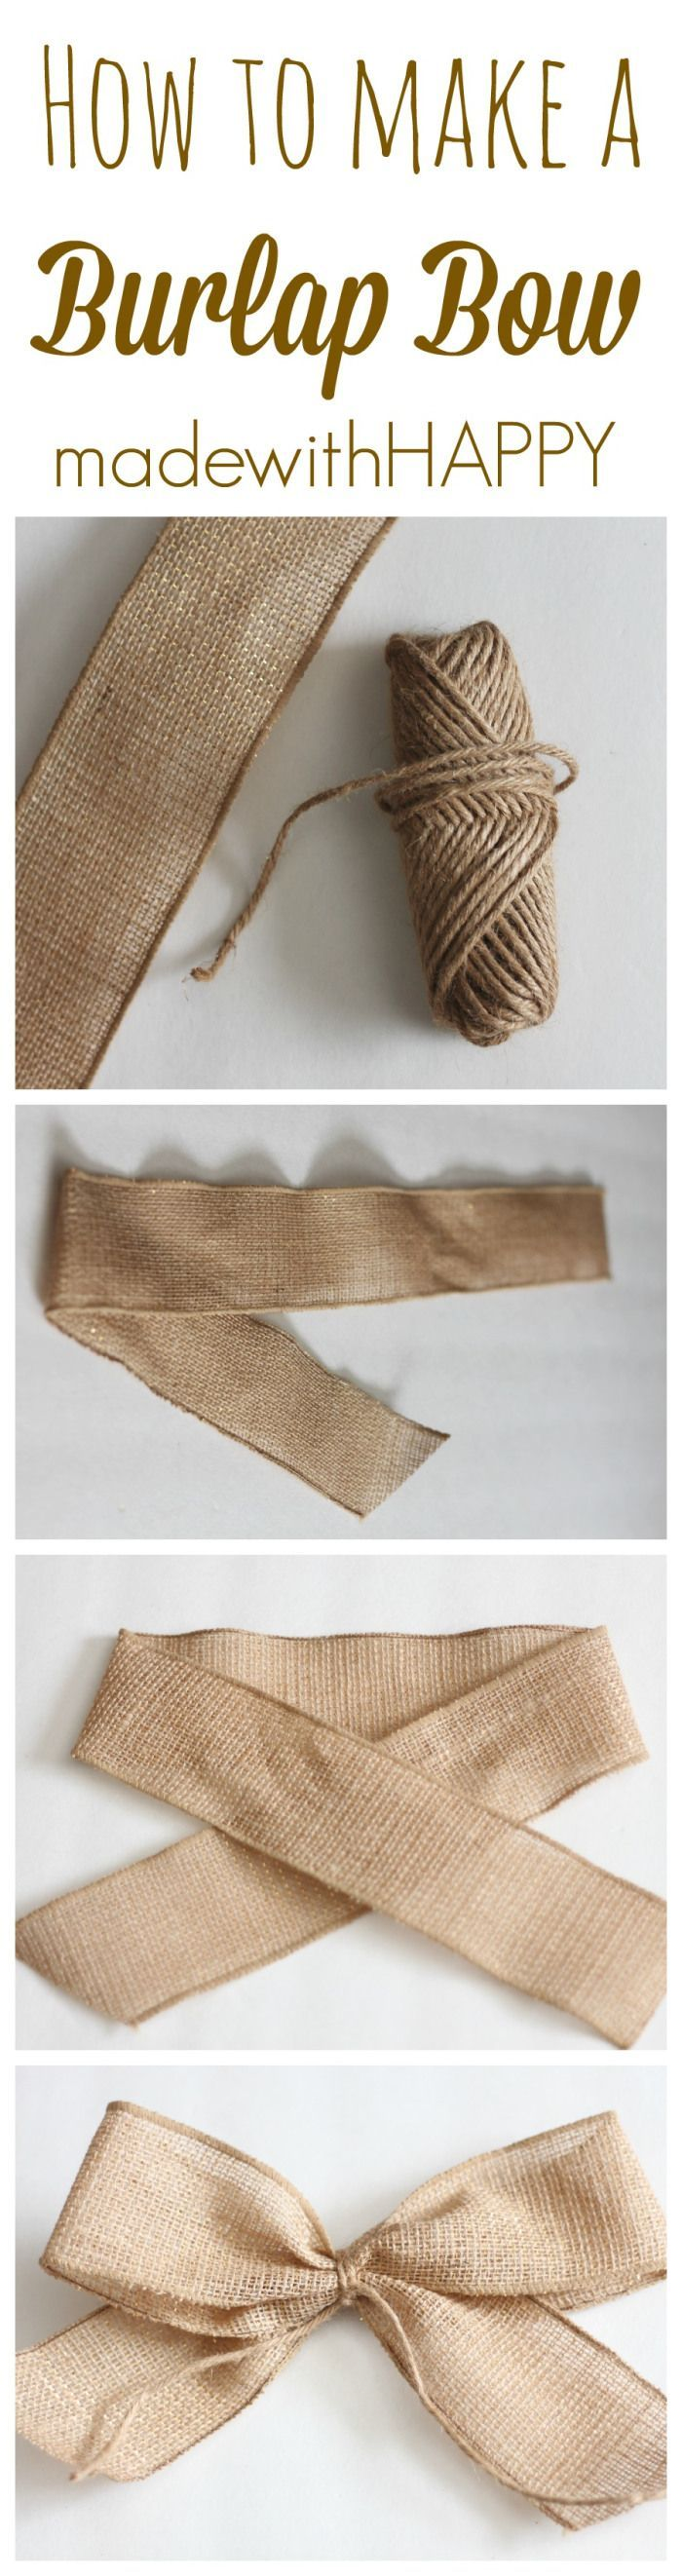 How to make a burlap bow | Decorating with Burlap | Fall Decor with burlap